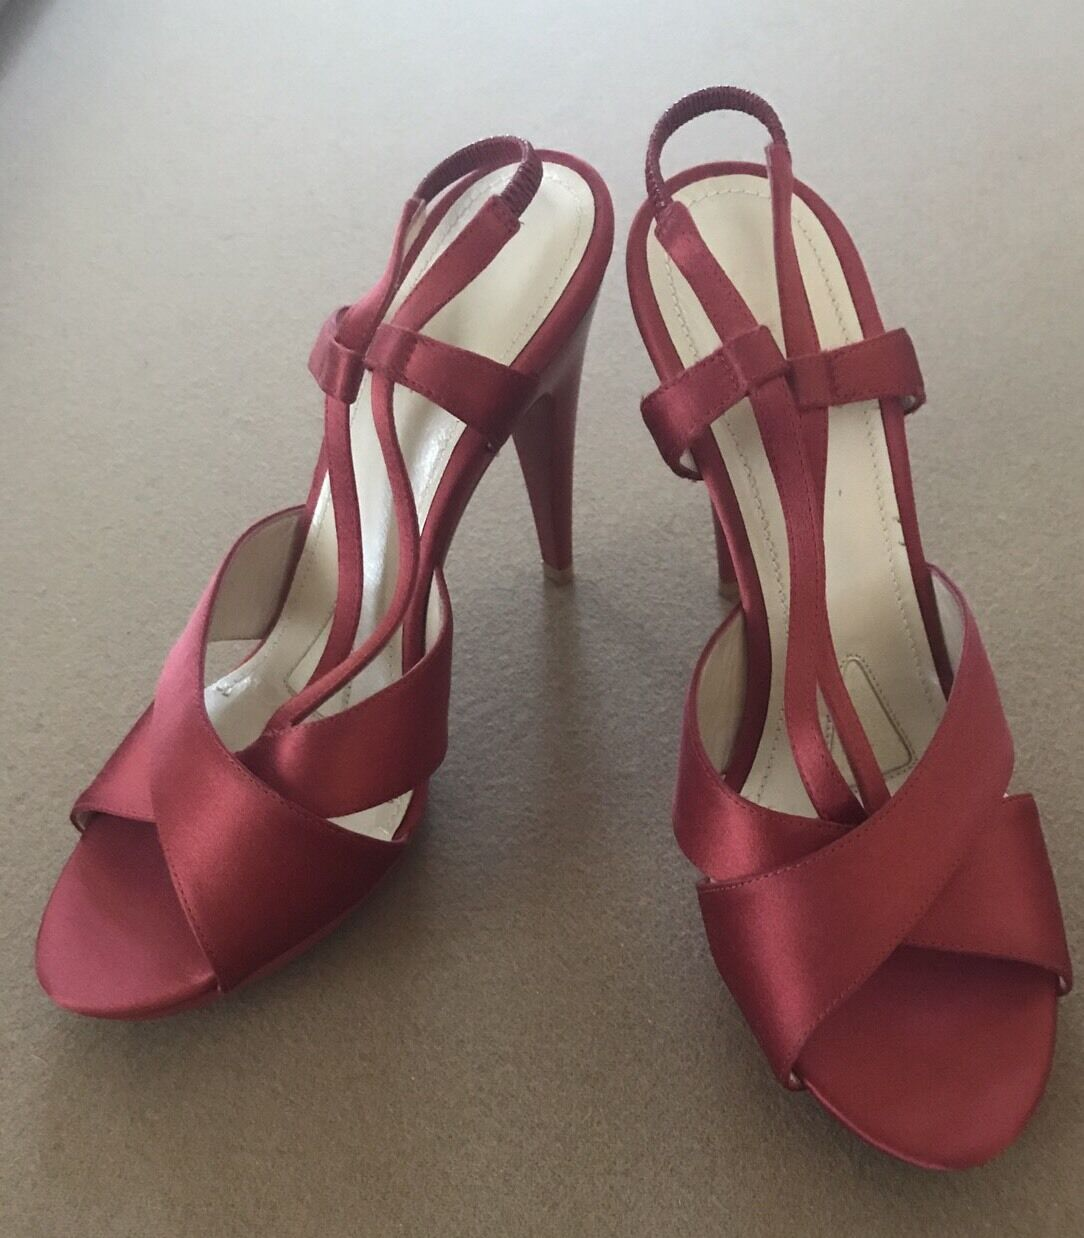 Jil Sander chaussures rouge Satin Pumps New Taille 36